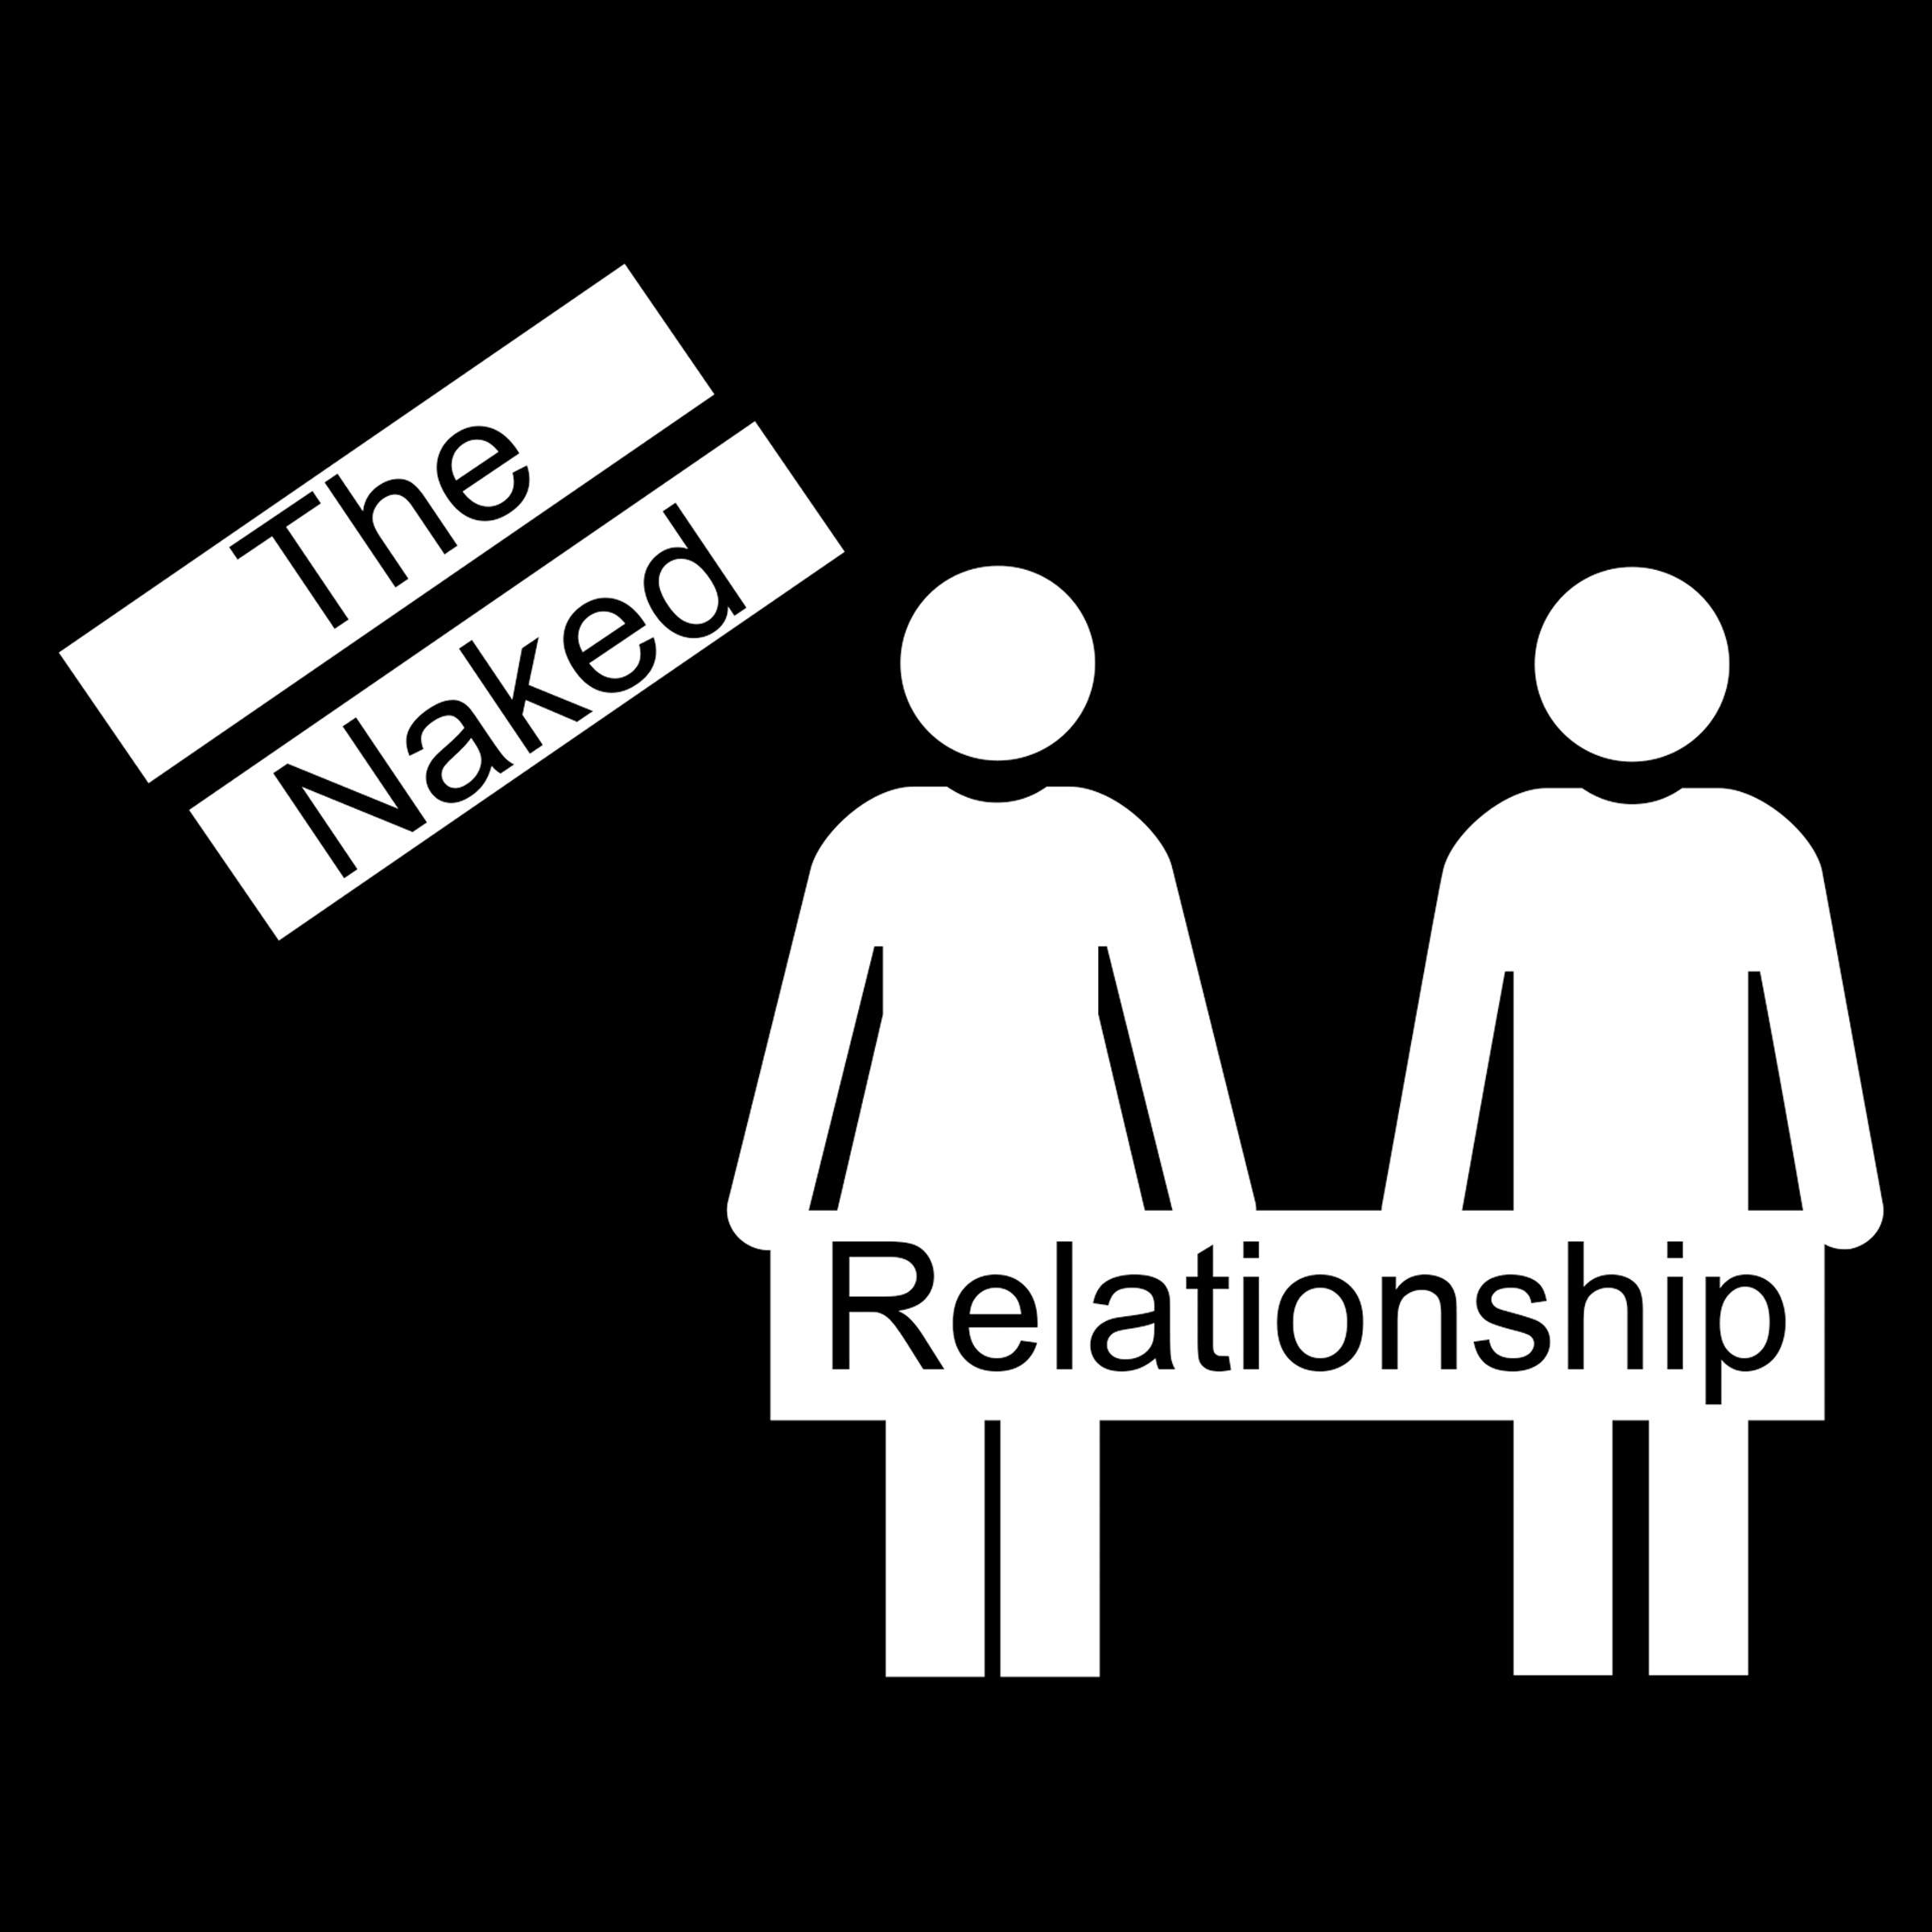 """The Naked Relationship 8"""" x 8"""" Window Sticker"""